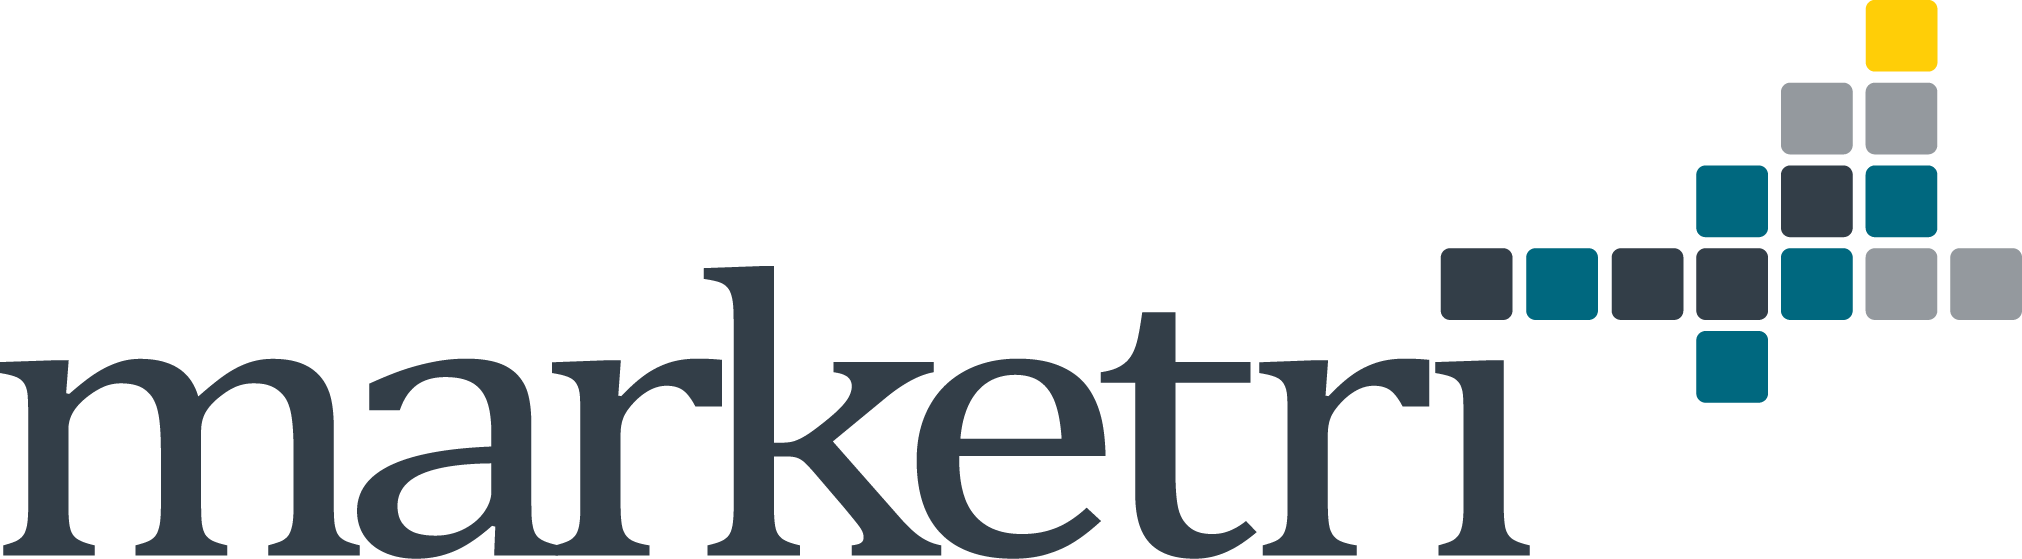 Marketri Logo_2017_FINAL